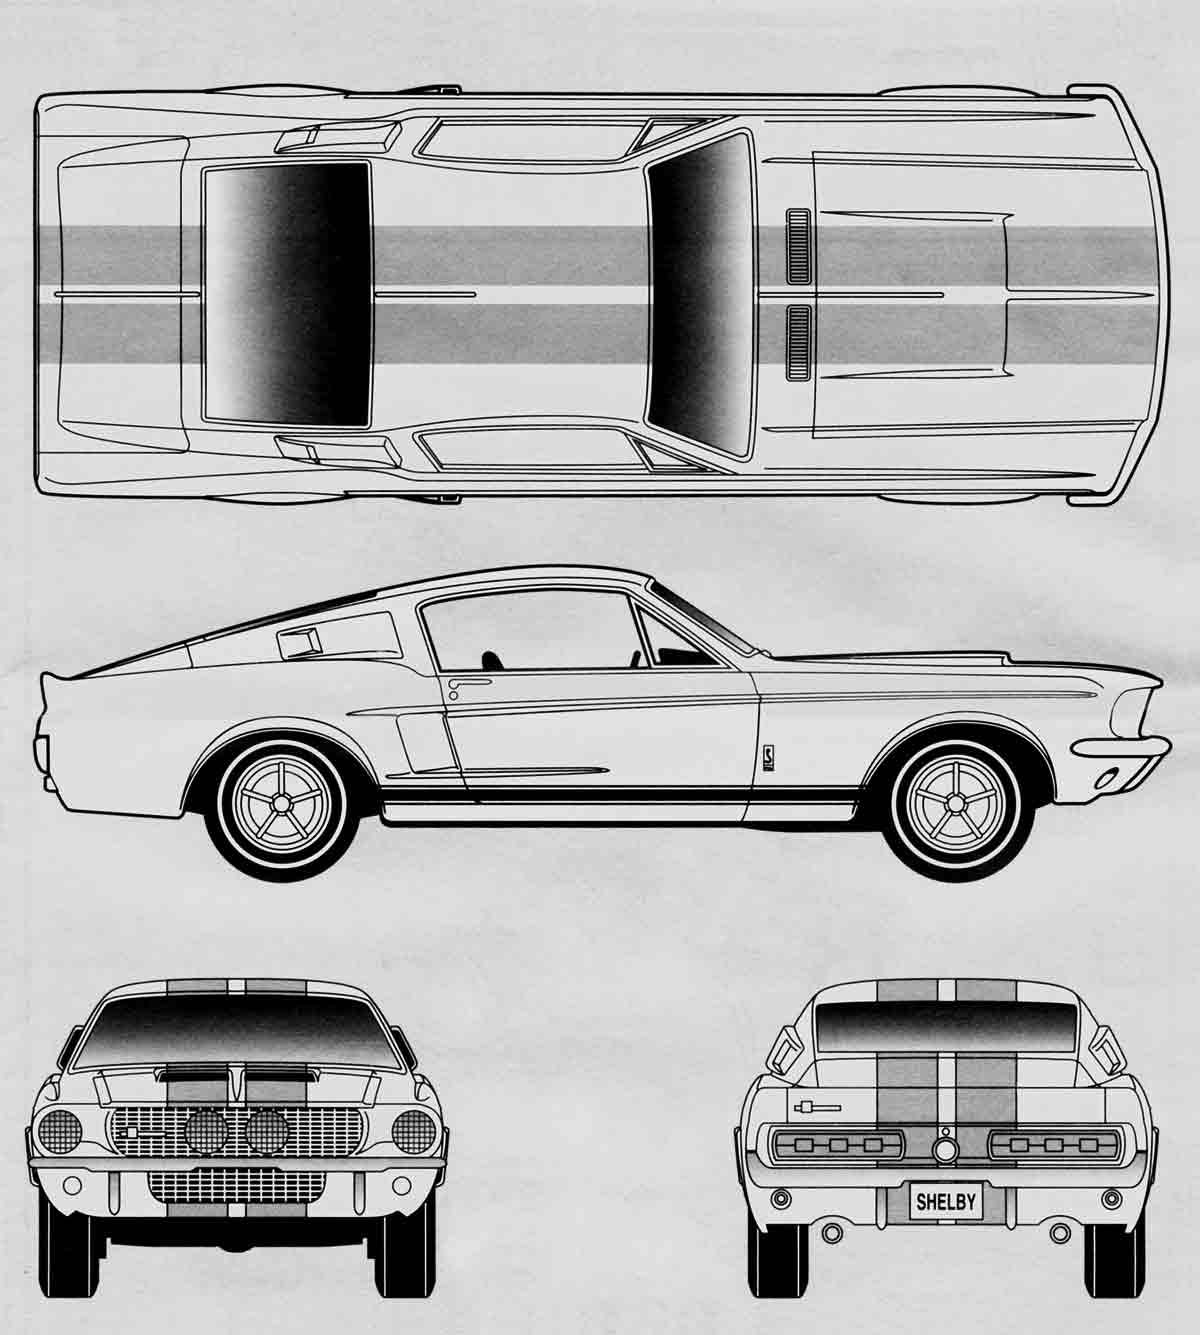 1964 mustang back clipart view clipart images gallery for.